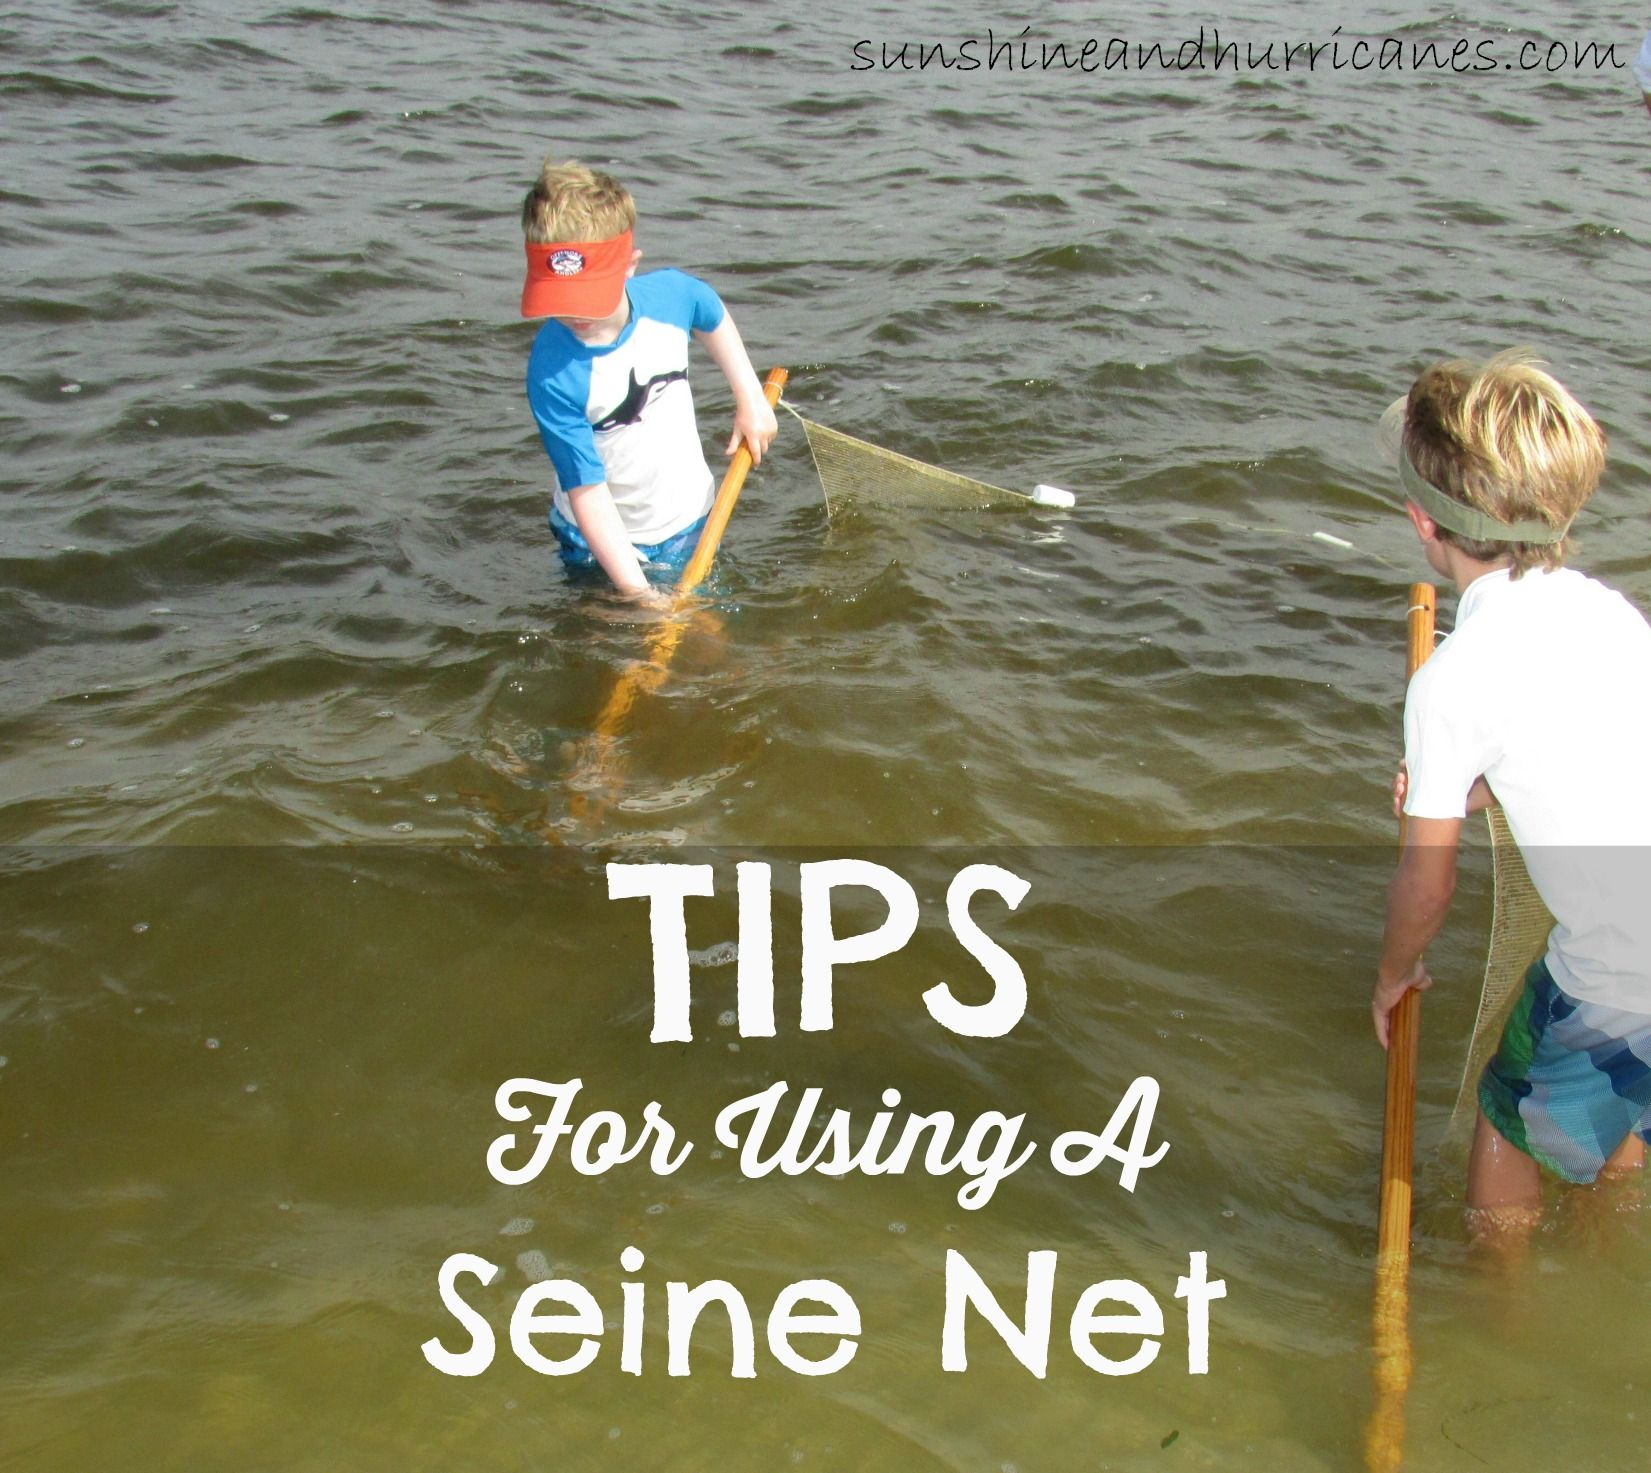 Seine Net Tips to catch and observe sea critters.